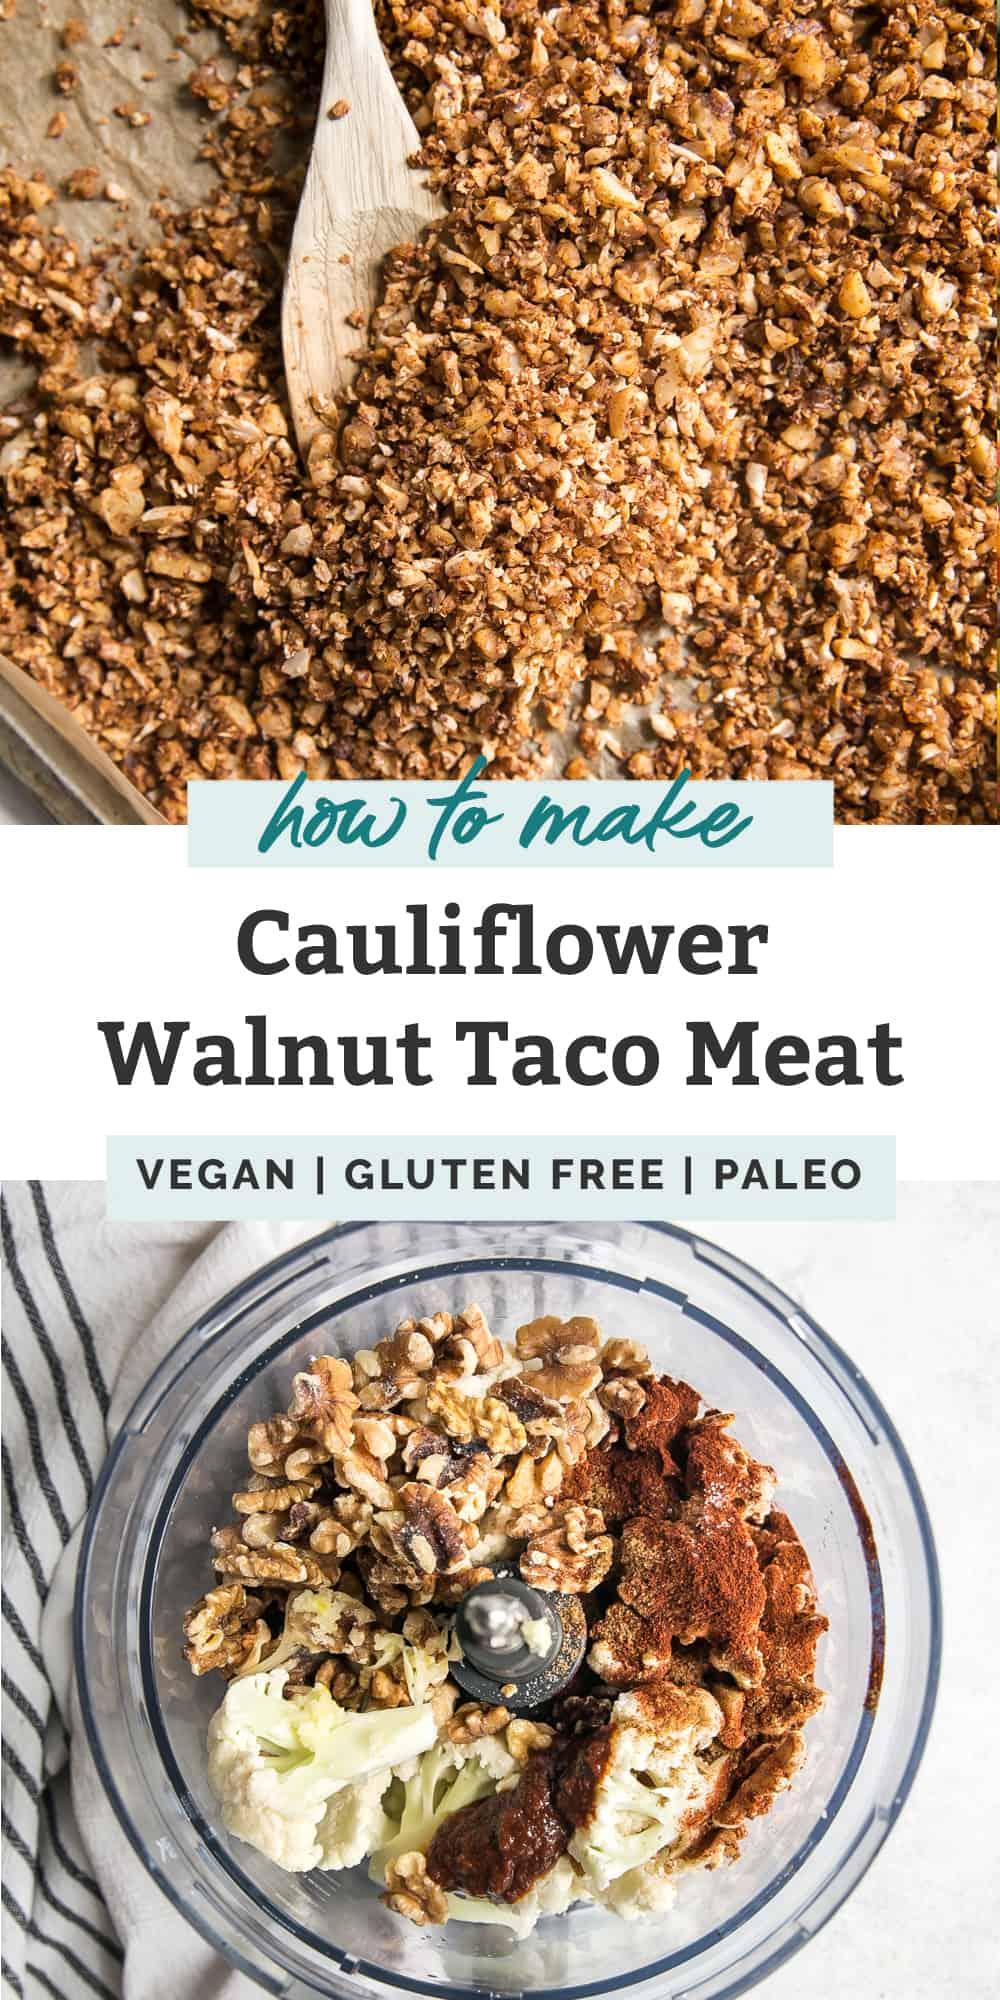 How to Make Walnut Taco Meat pinterest